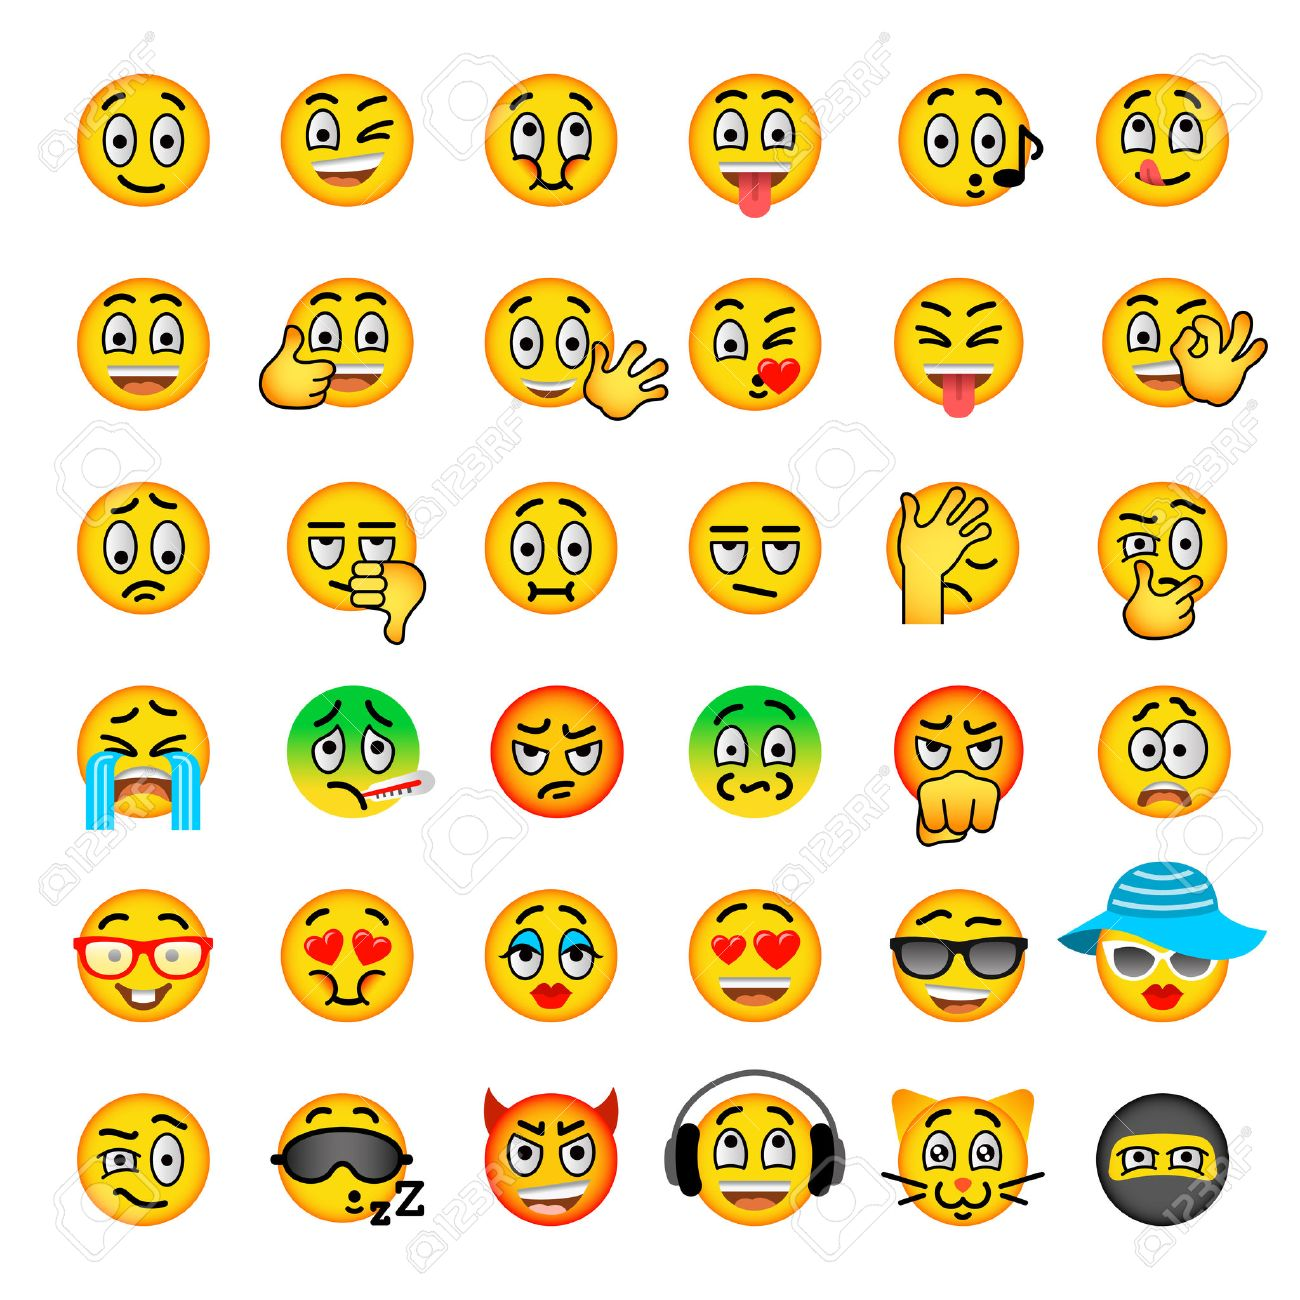 Smiley Face Flat Vector Icons Set Emoji Emoticons Different